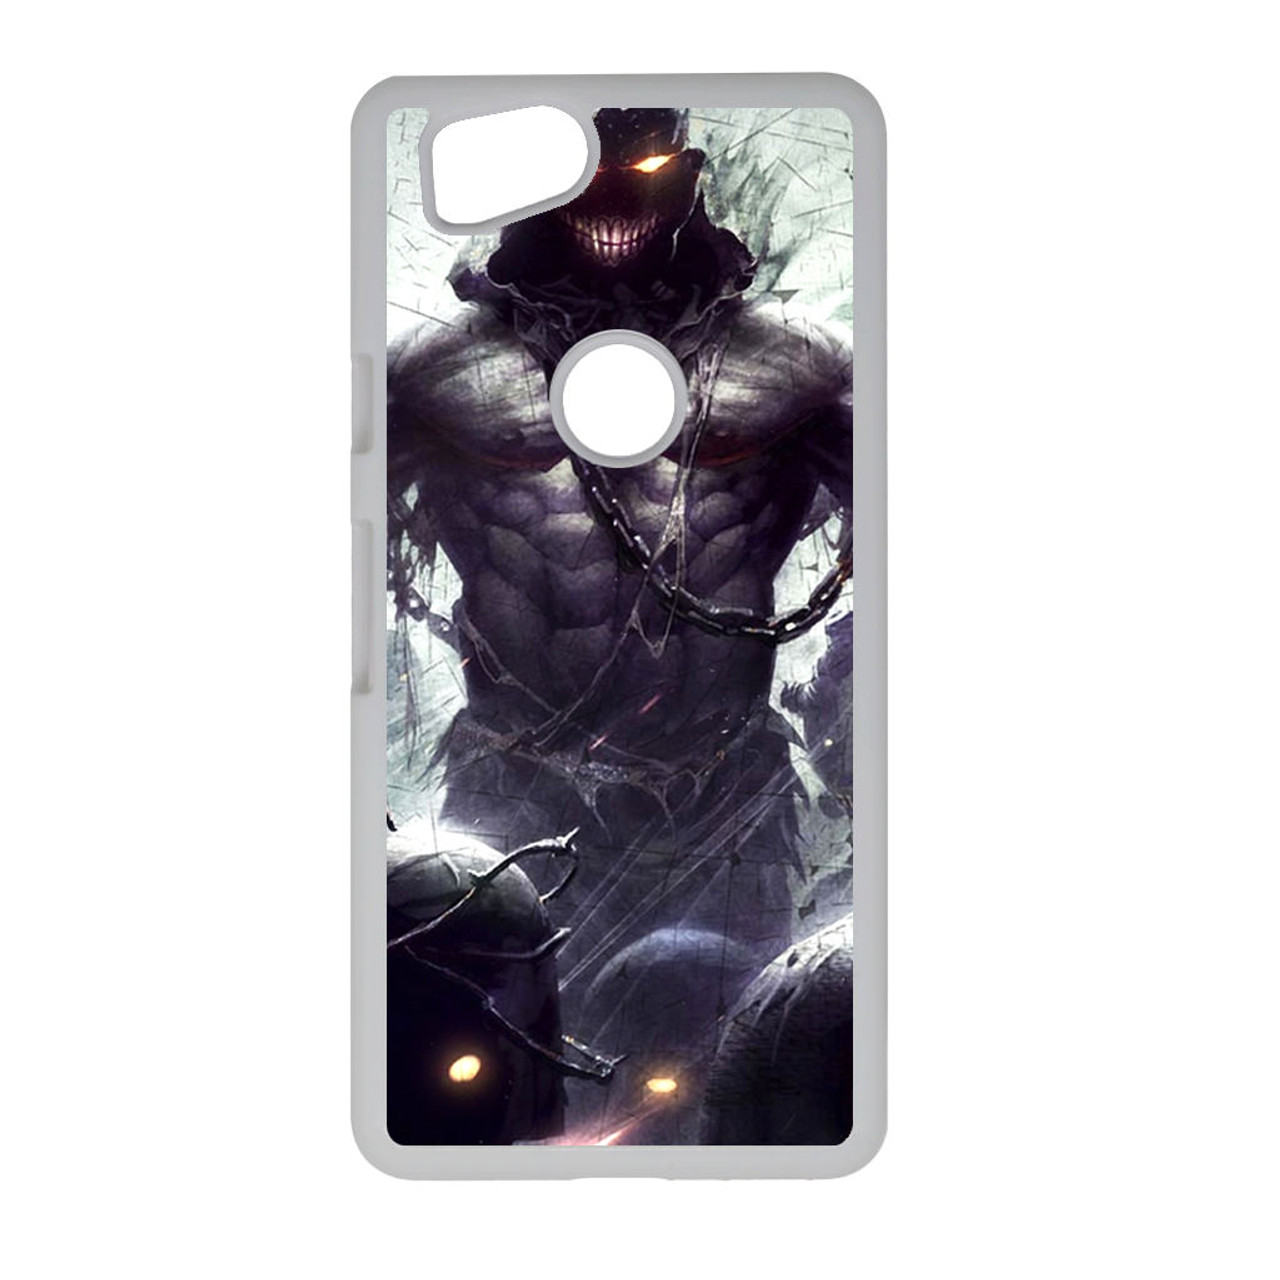 Disturbed The Guy 2 iphone case